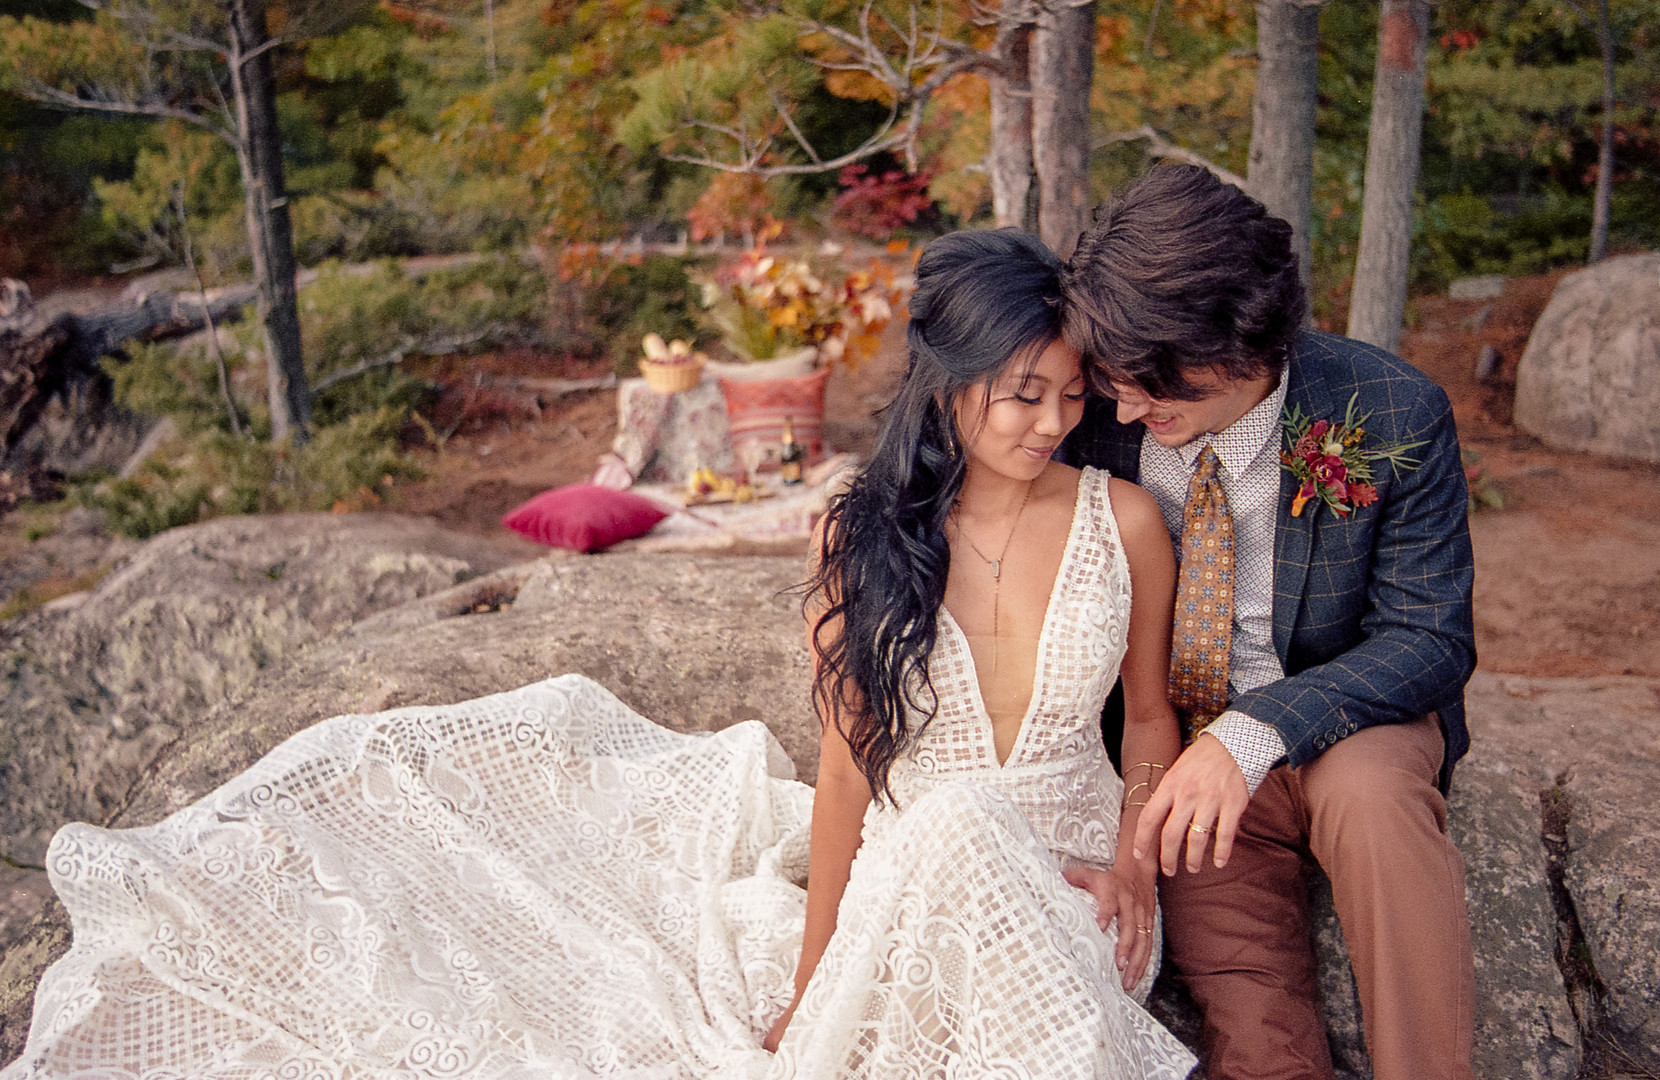 Bride and Groom outdoors in the autumn with picnic